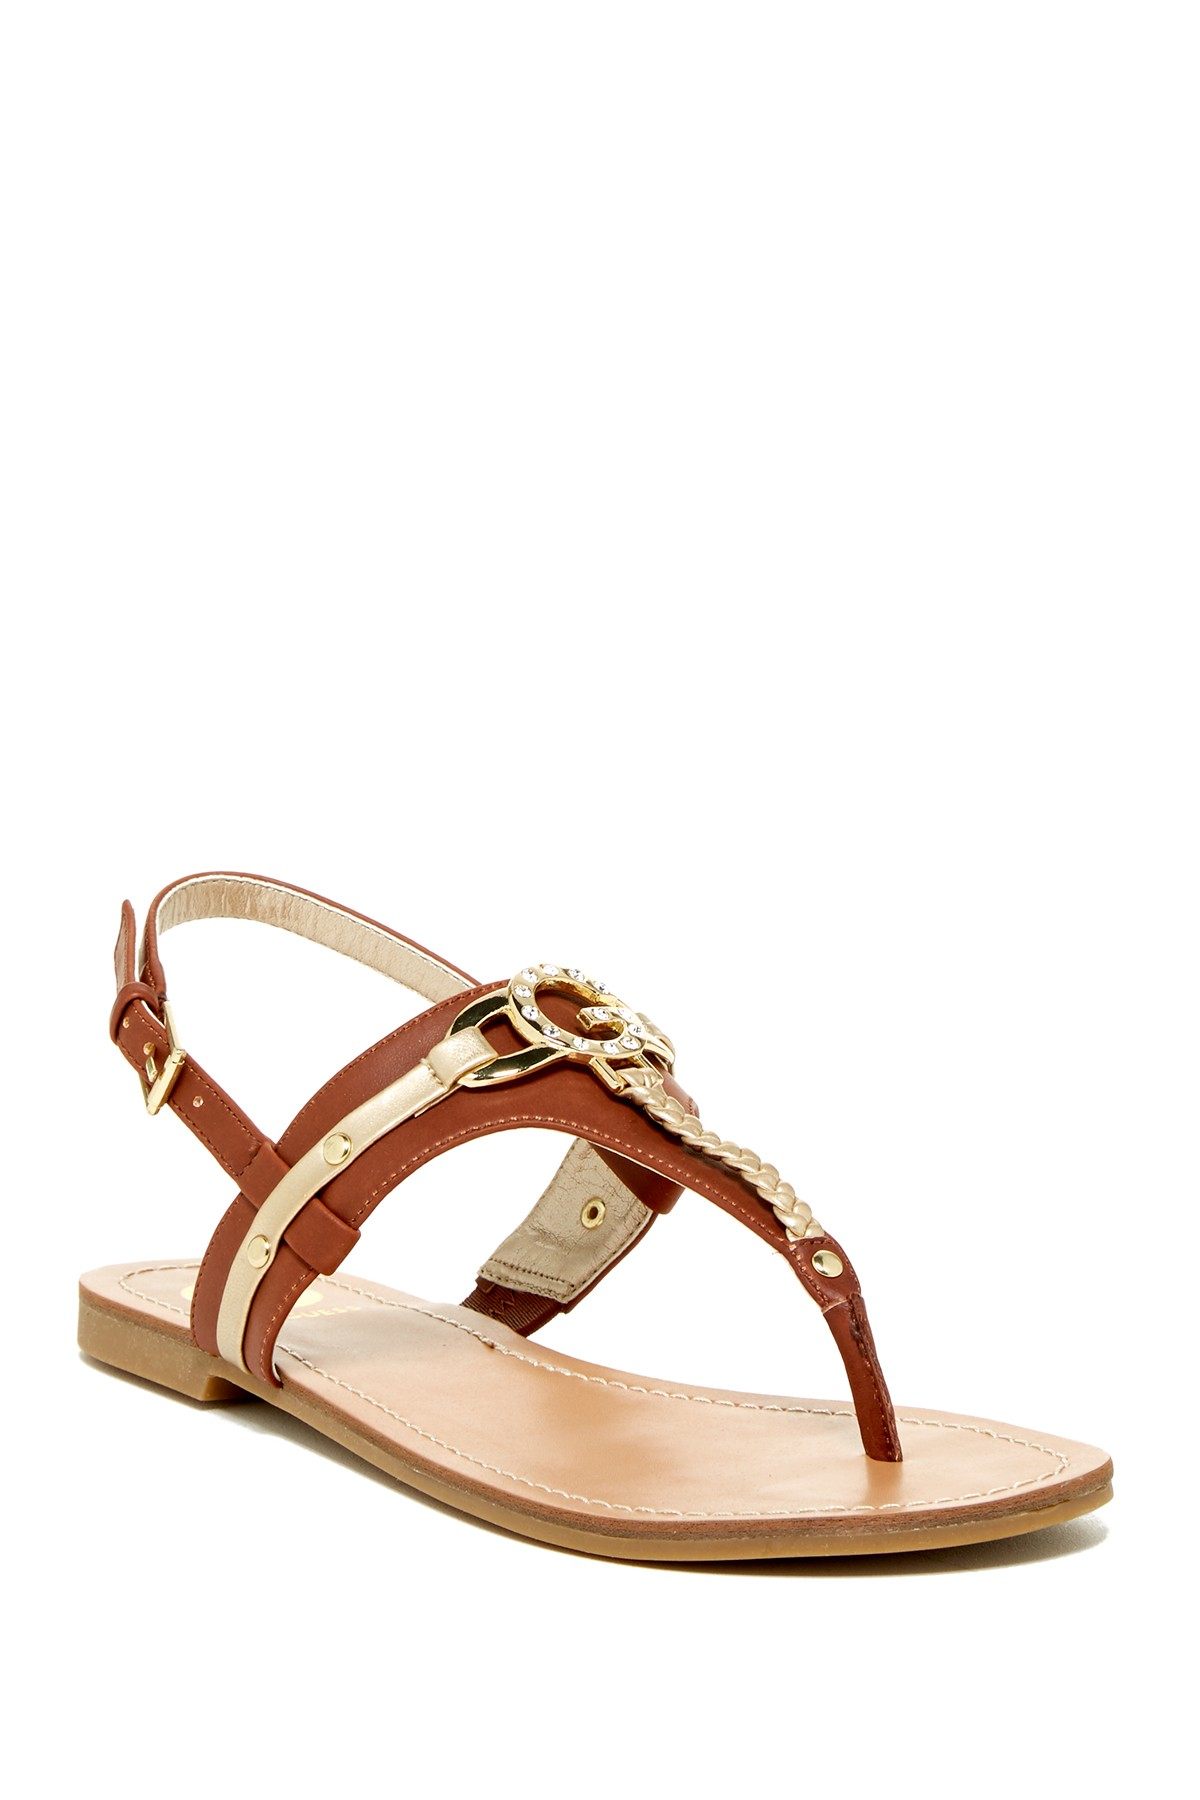 ff42a44173b4 Lyst - G by Guess Leed Sandal in Brown